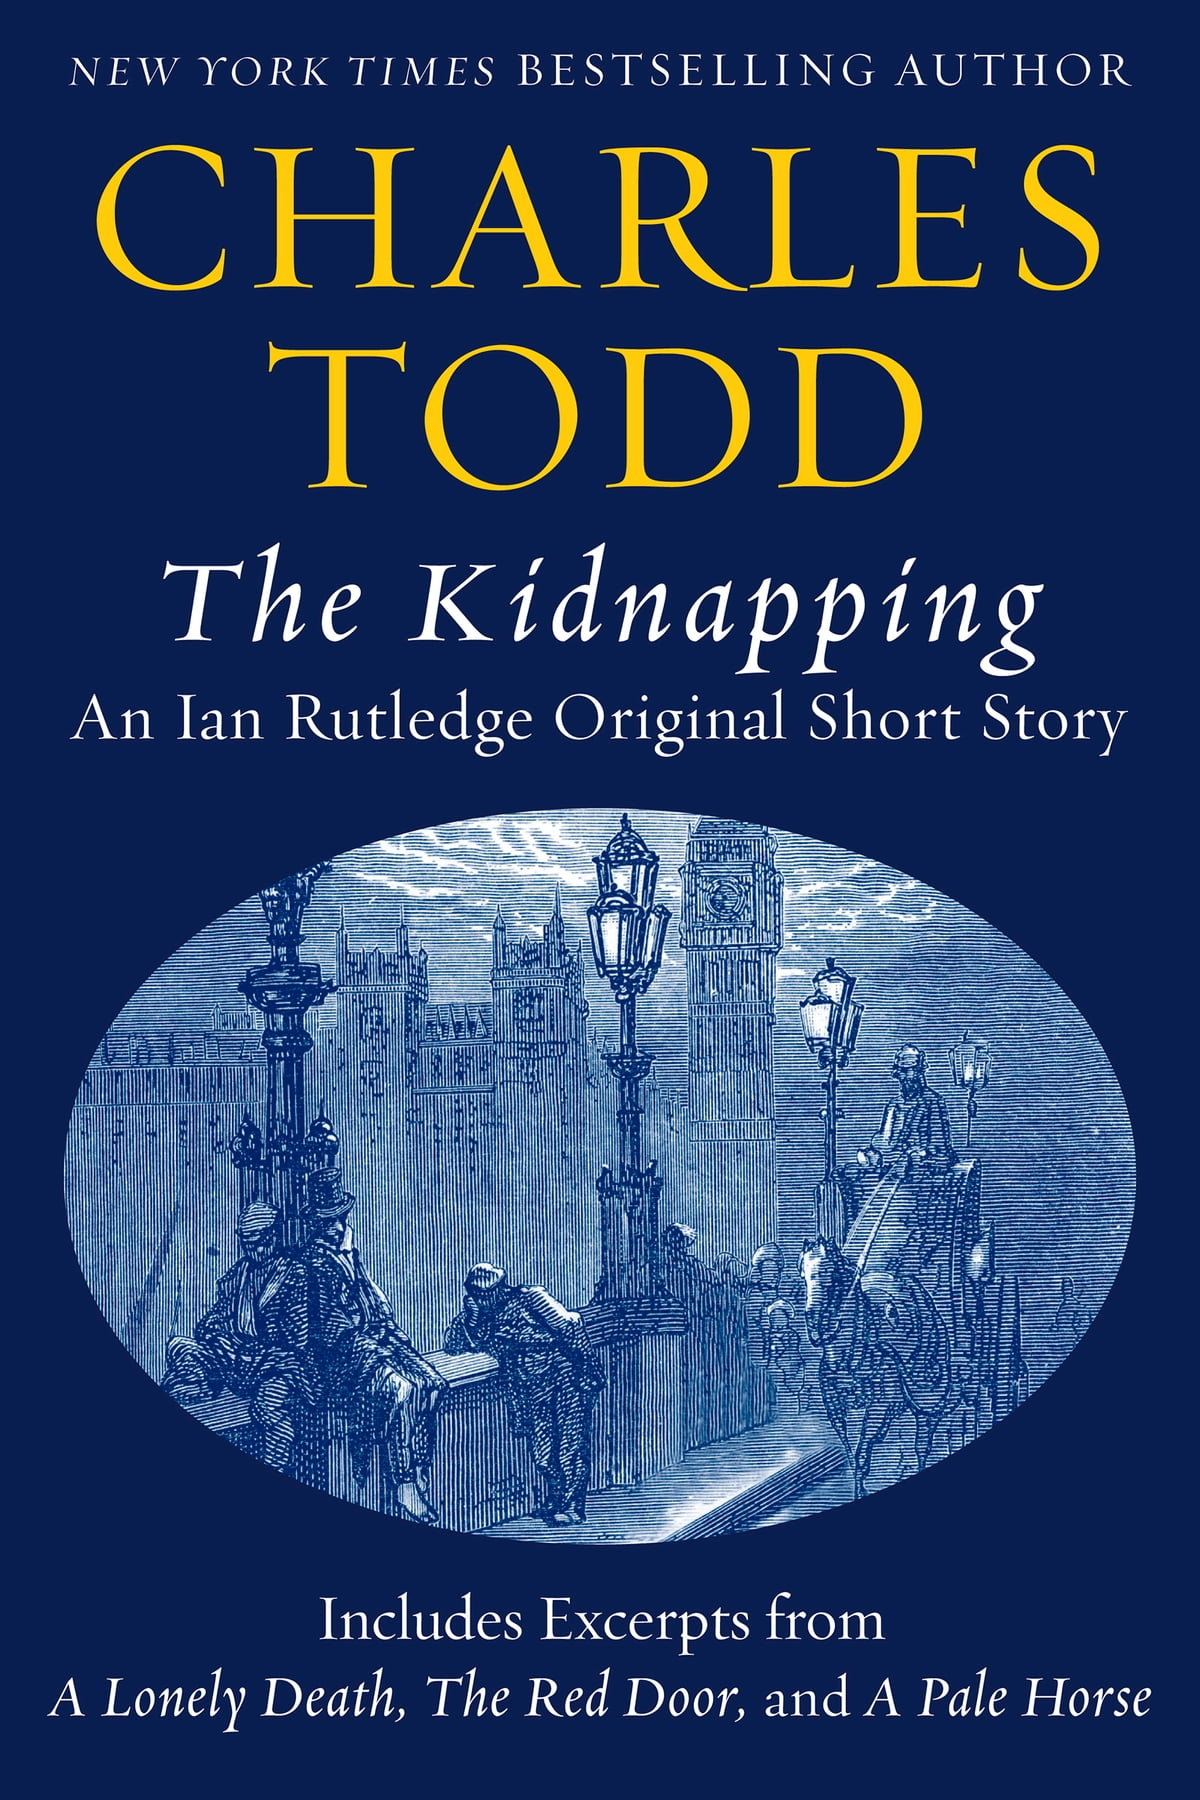 The Kidnapping: An Ian Rutledge Original Short Story with Bonus Content  ebook by Charles Todd - Rakuten Kobo